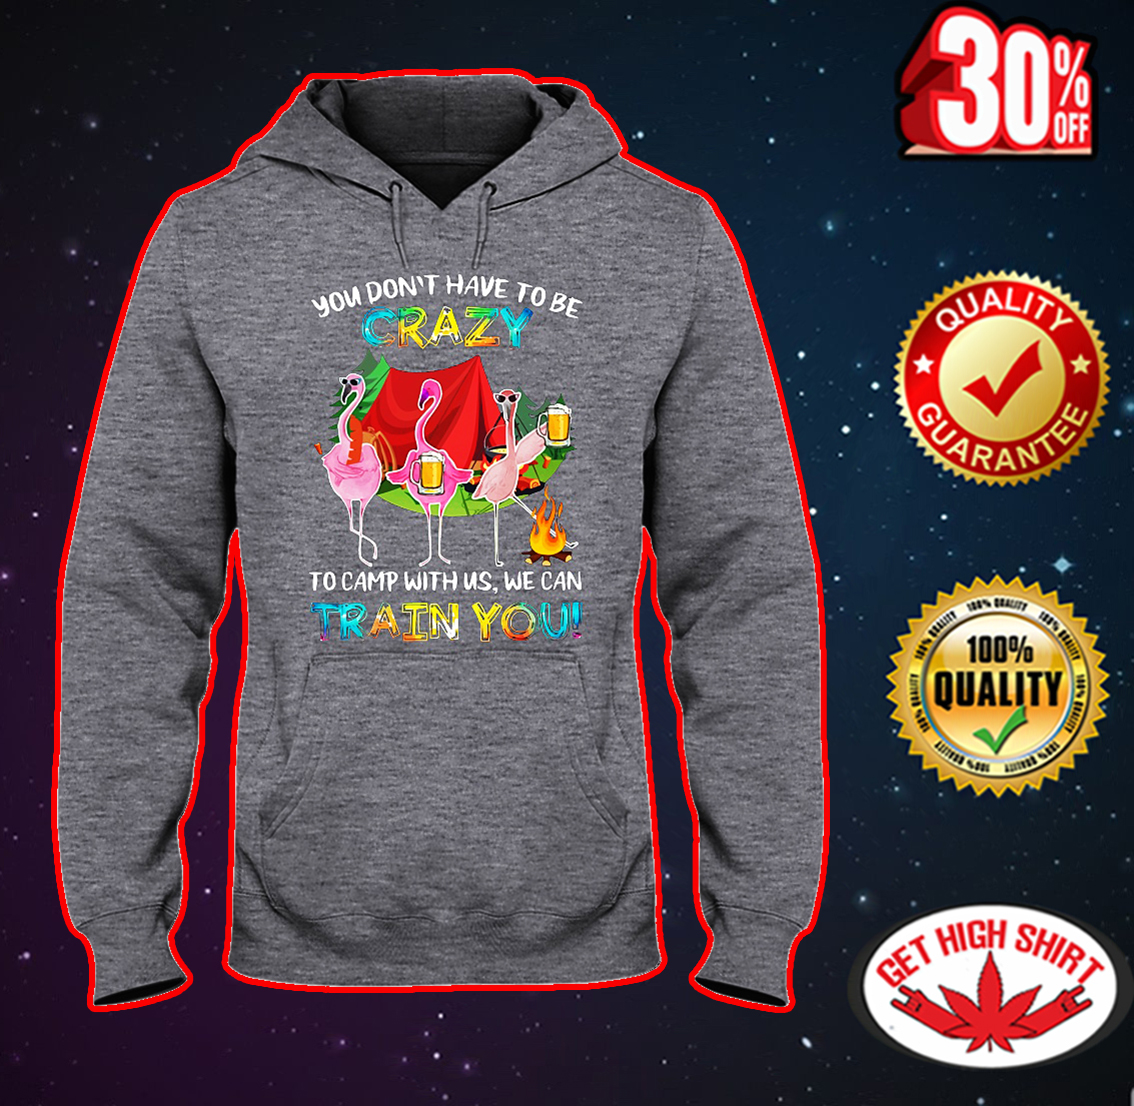 Flamingo you don't have to be crazy to camp with us we can train you hooded sweatshirt